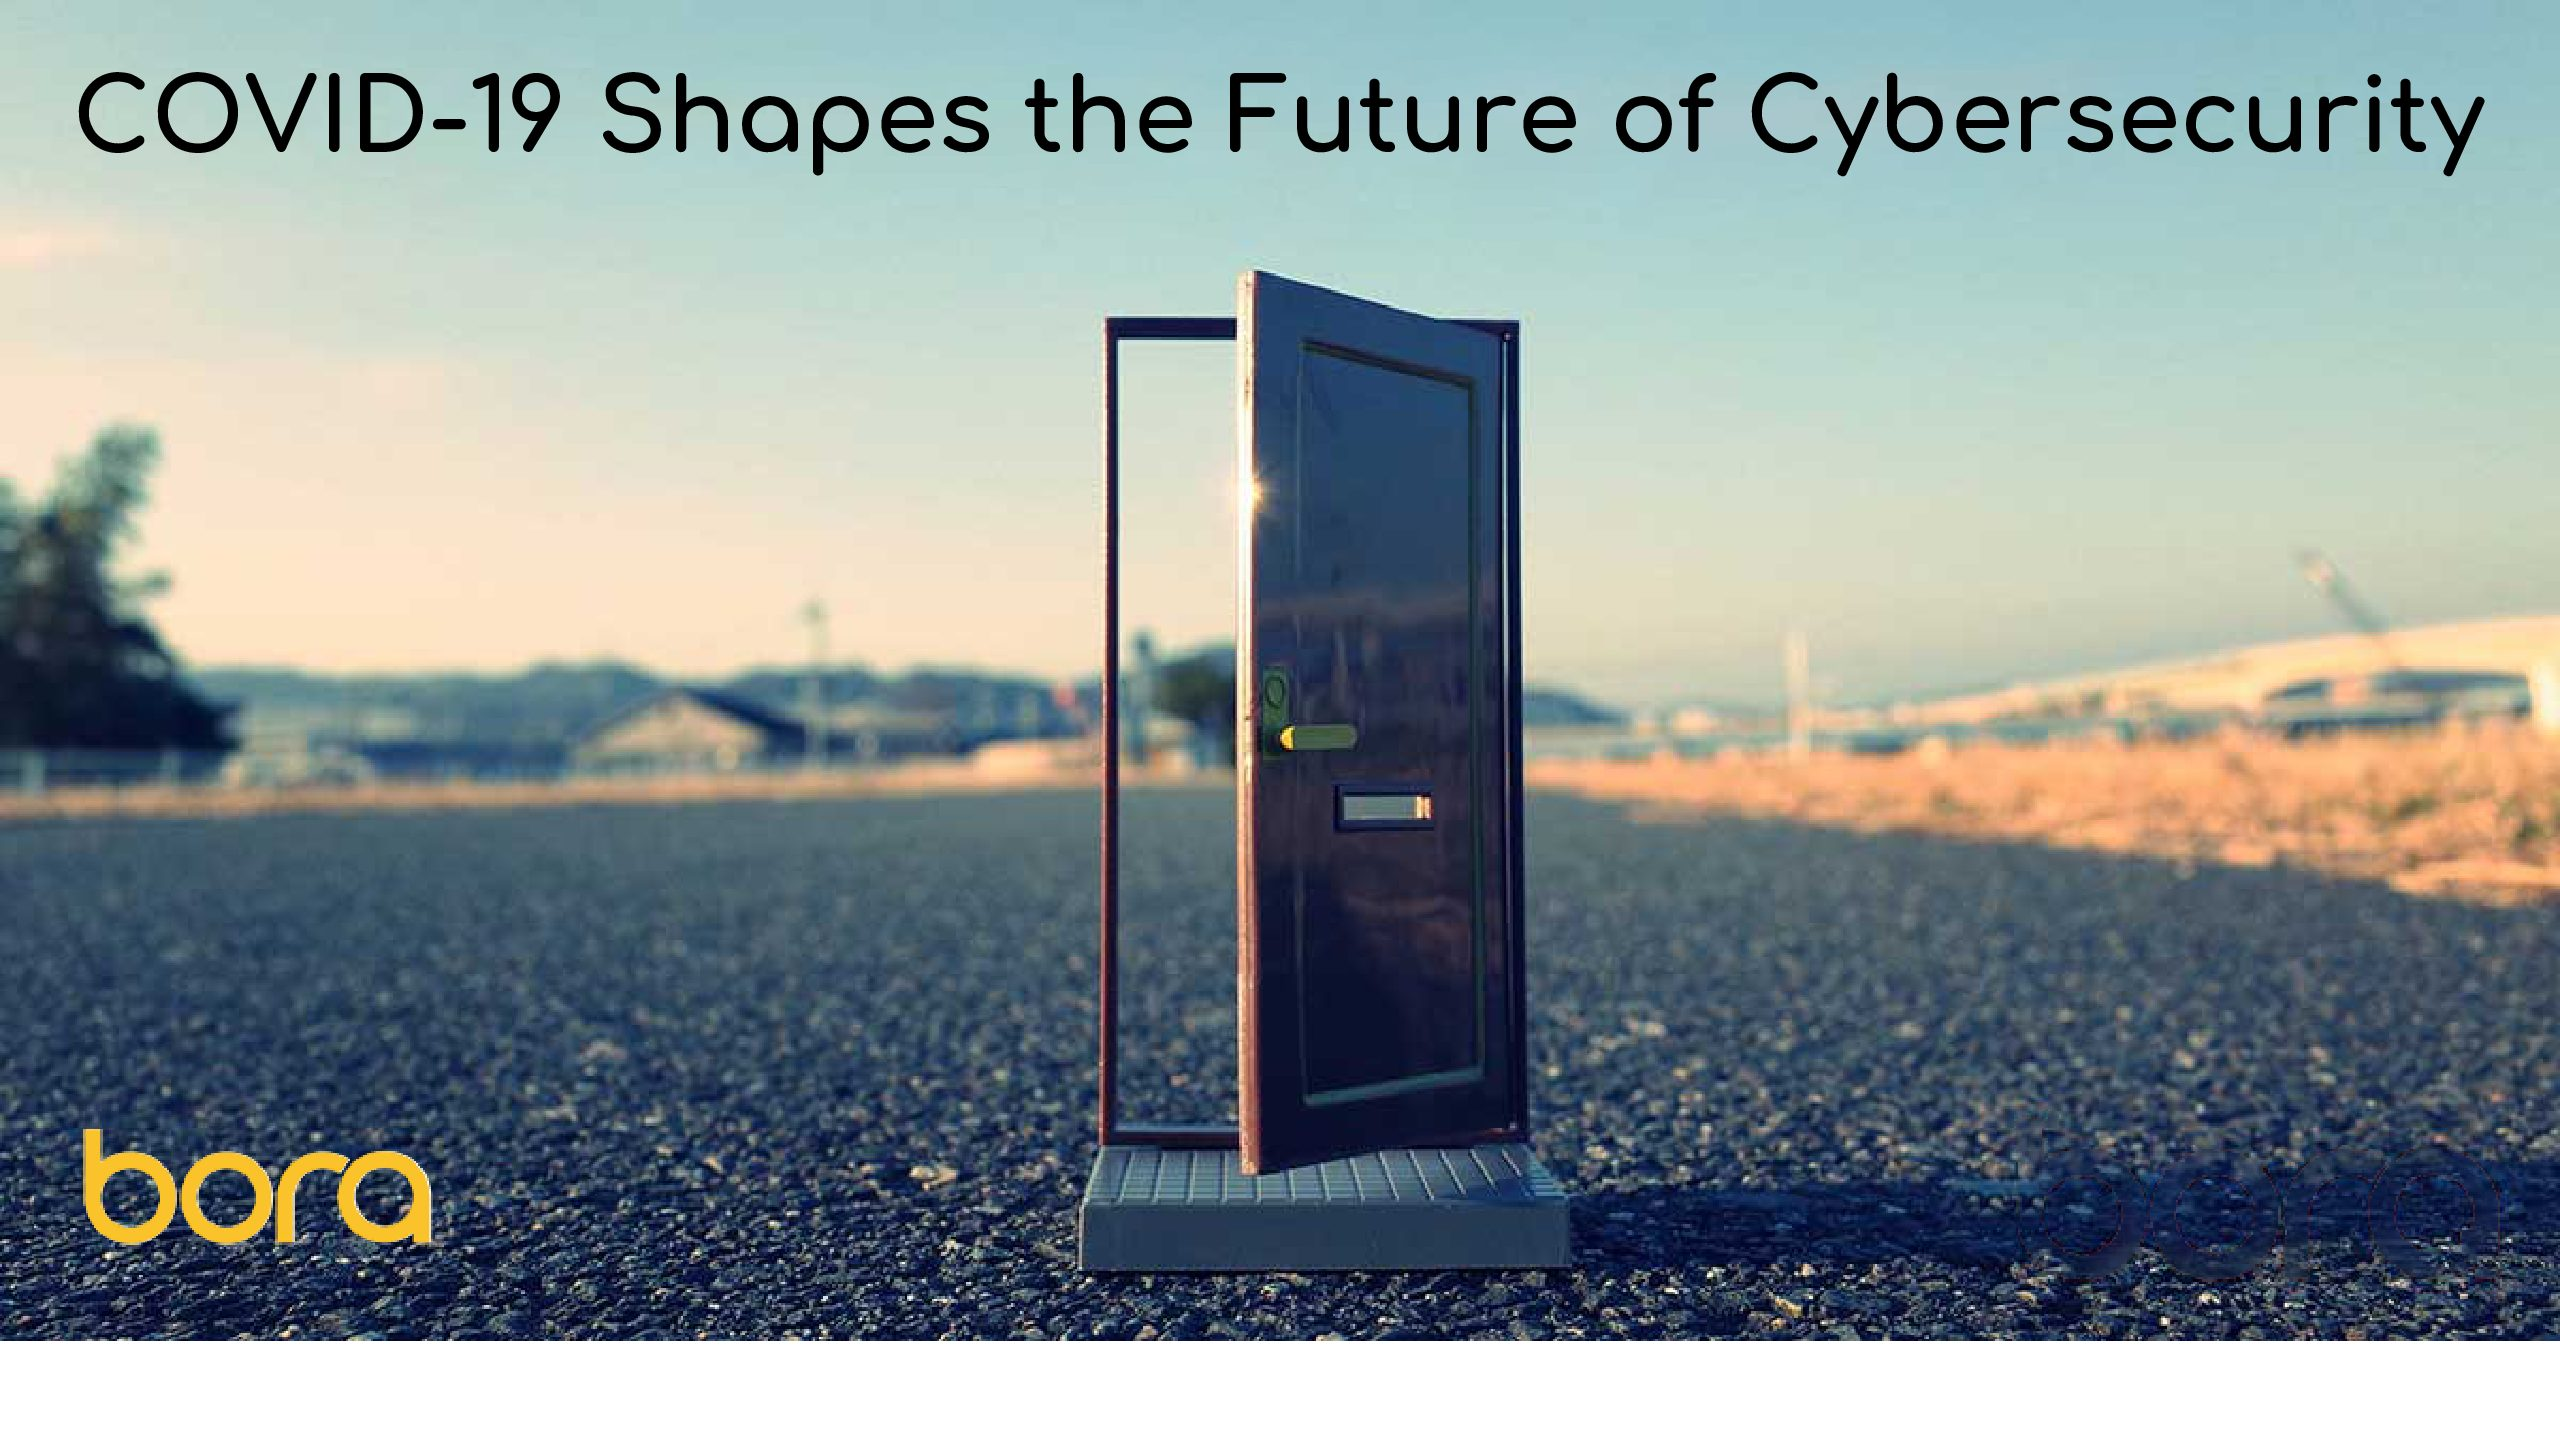 COVID-19 Shapes the Future of Cybersecurity